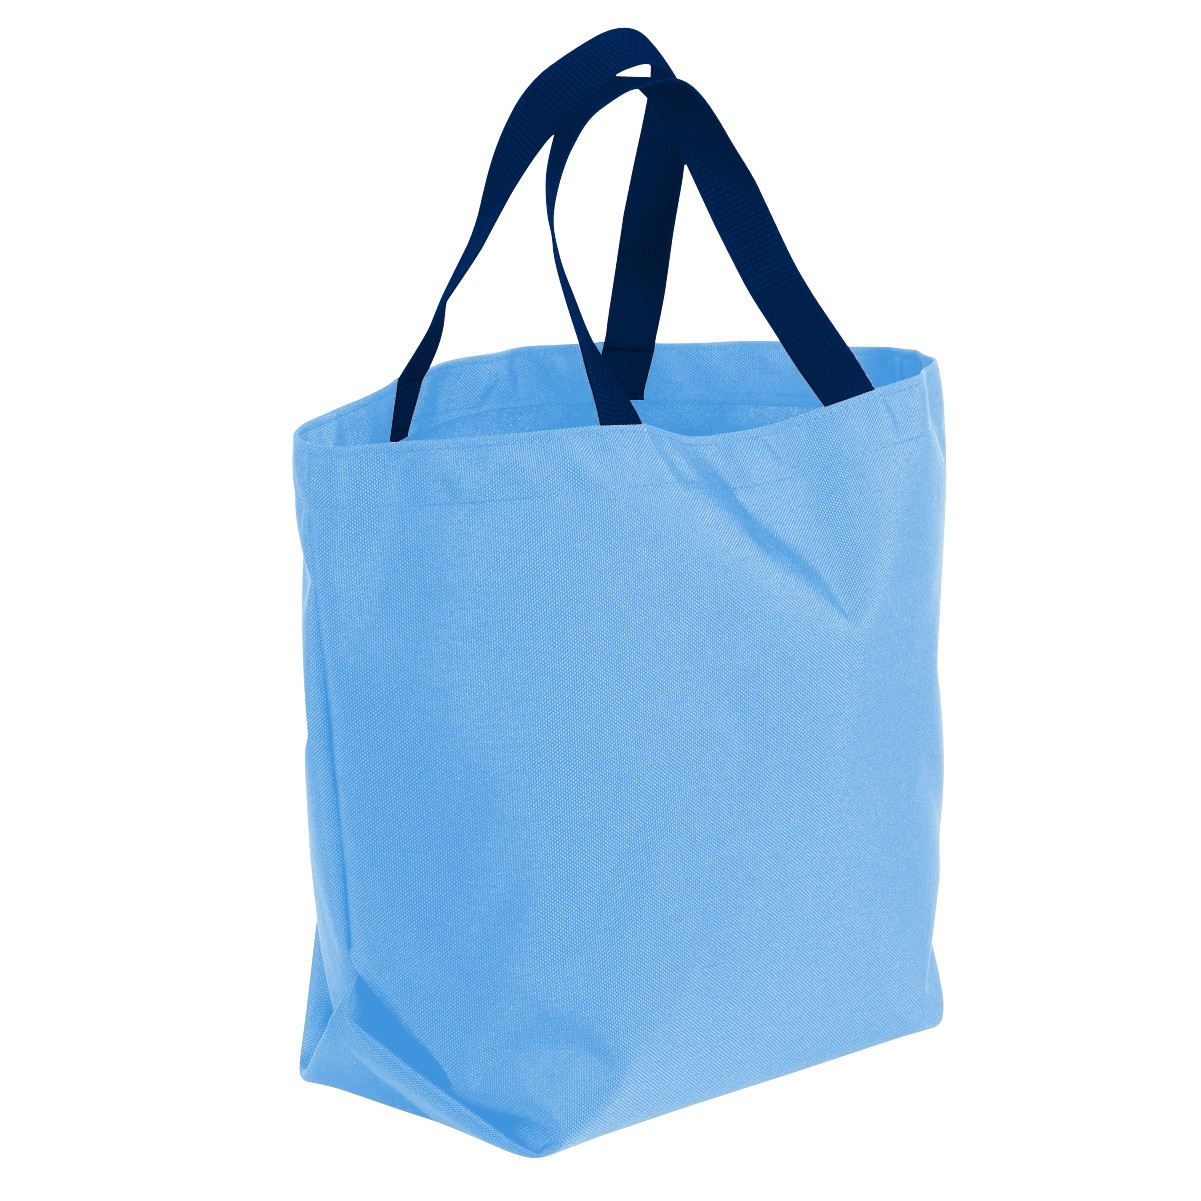 union-made tote bag